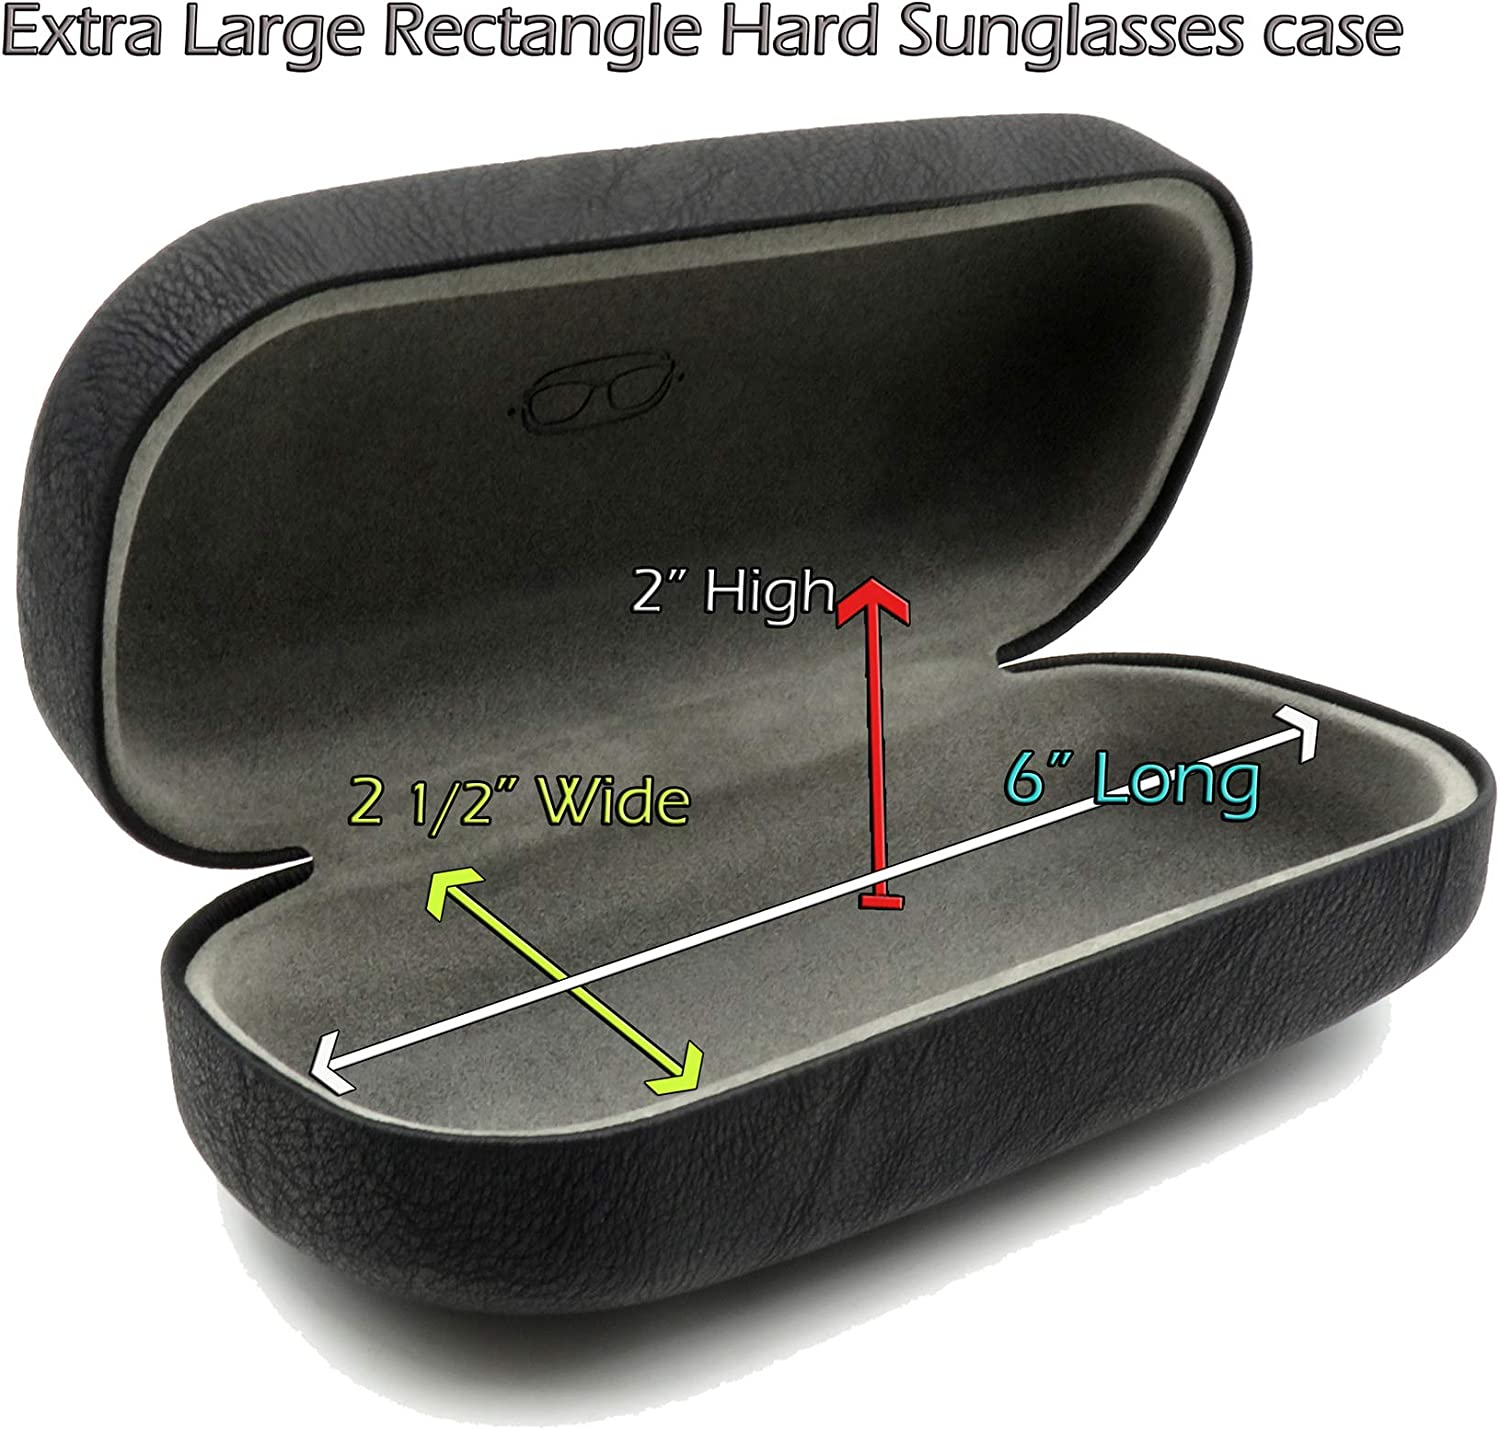 MyEyeglassCase Hard Sunglasses Cases for Large to oversized frames with cleaning cloth